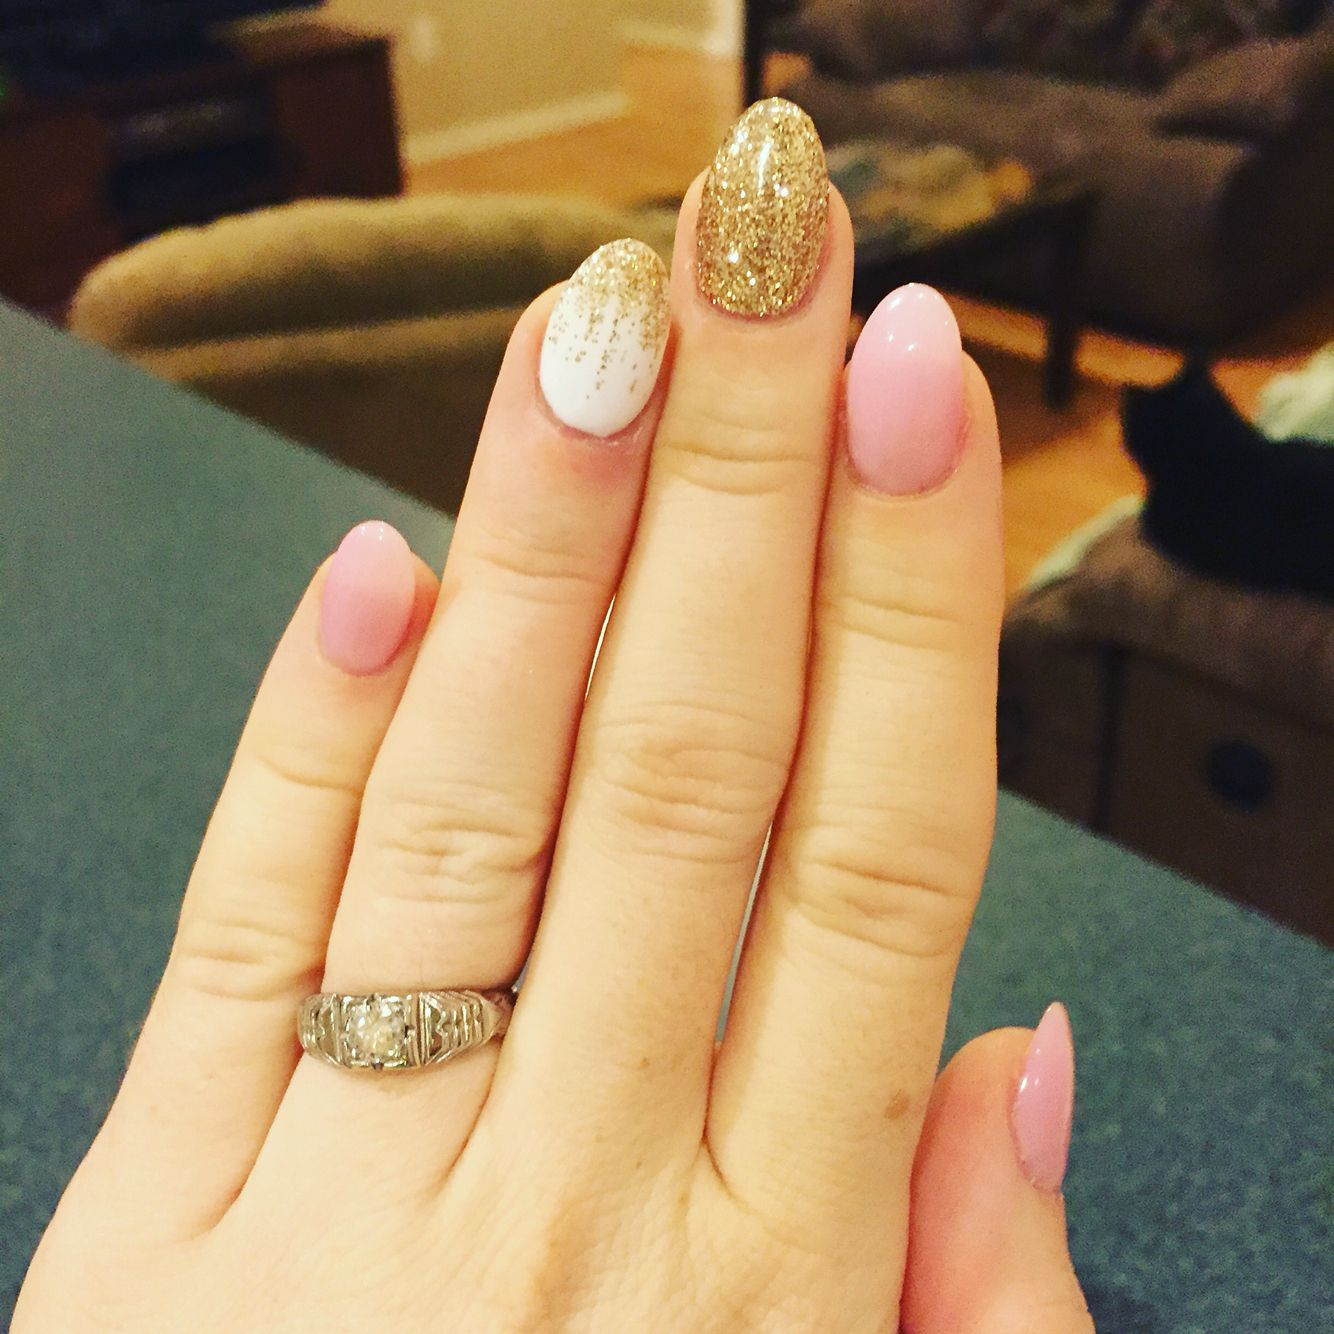 Pink, white and gold almond shaped nails #nails #almond | Nail ...